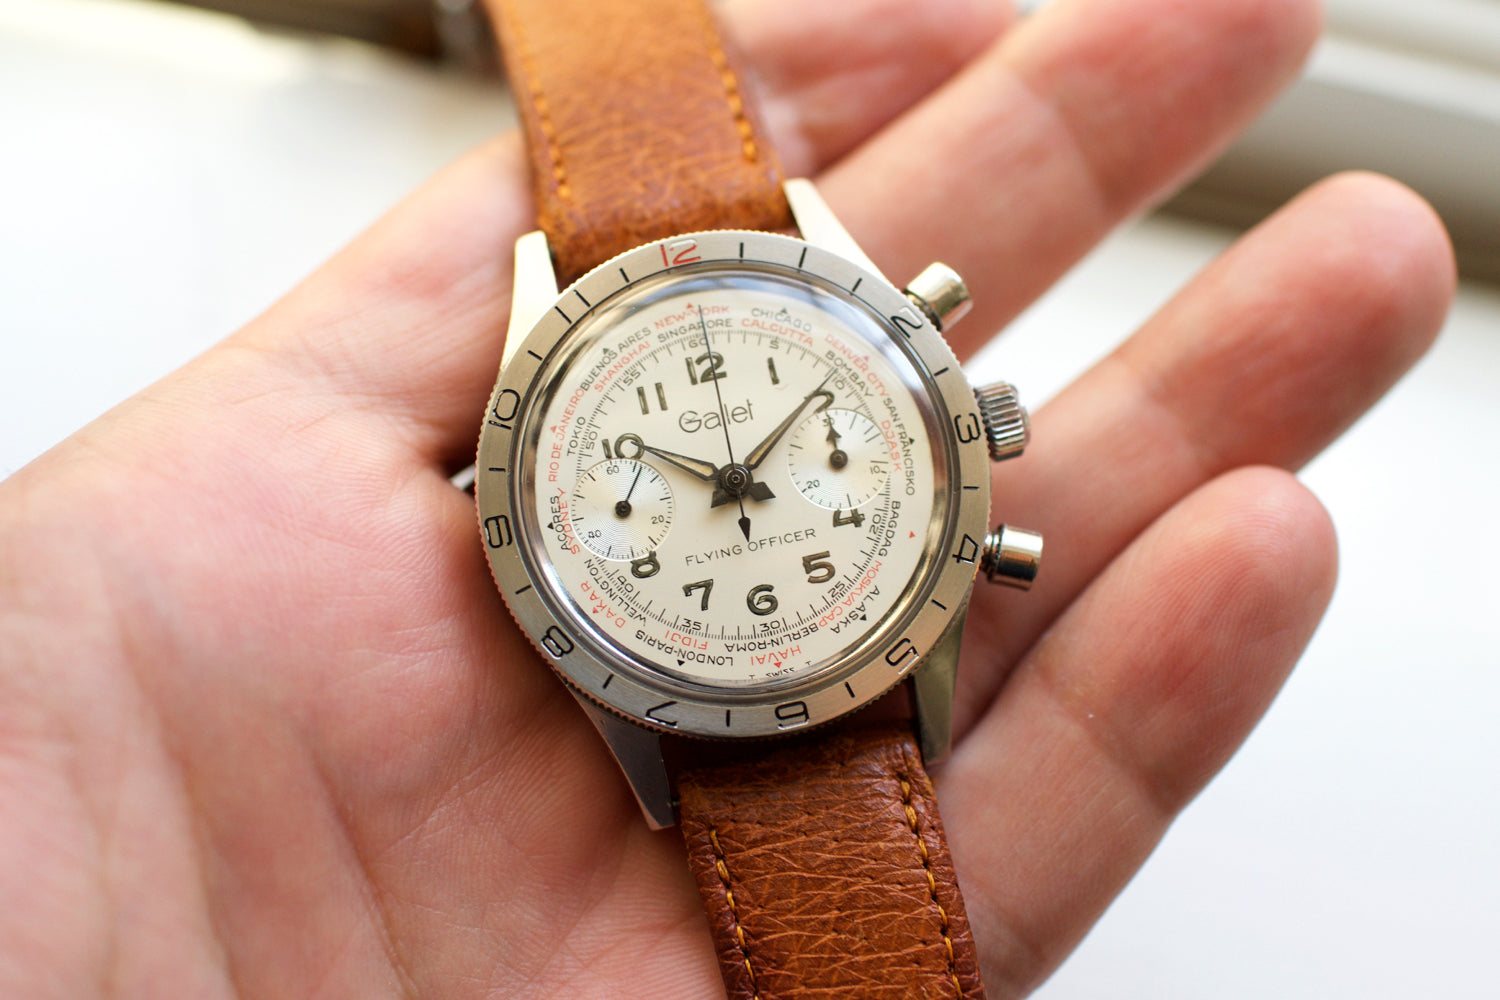 Gallet Flying Officer Vintage Chronograph Tritium